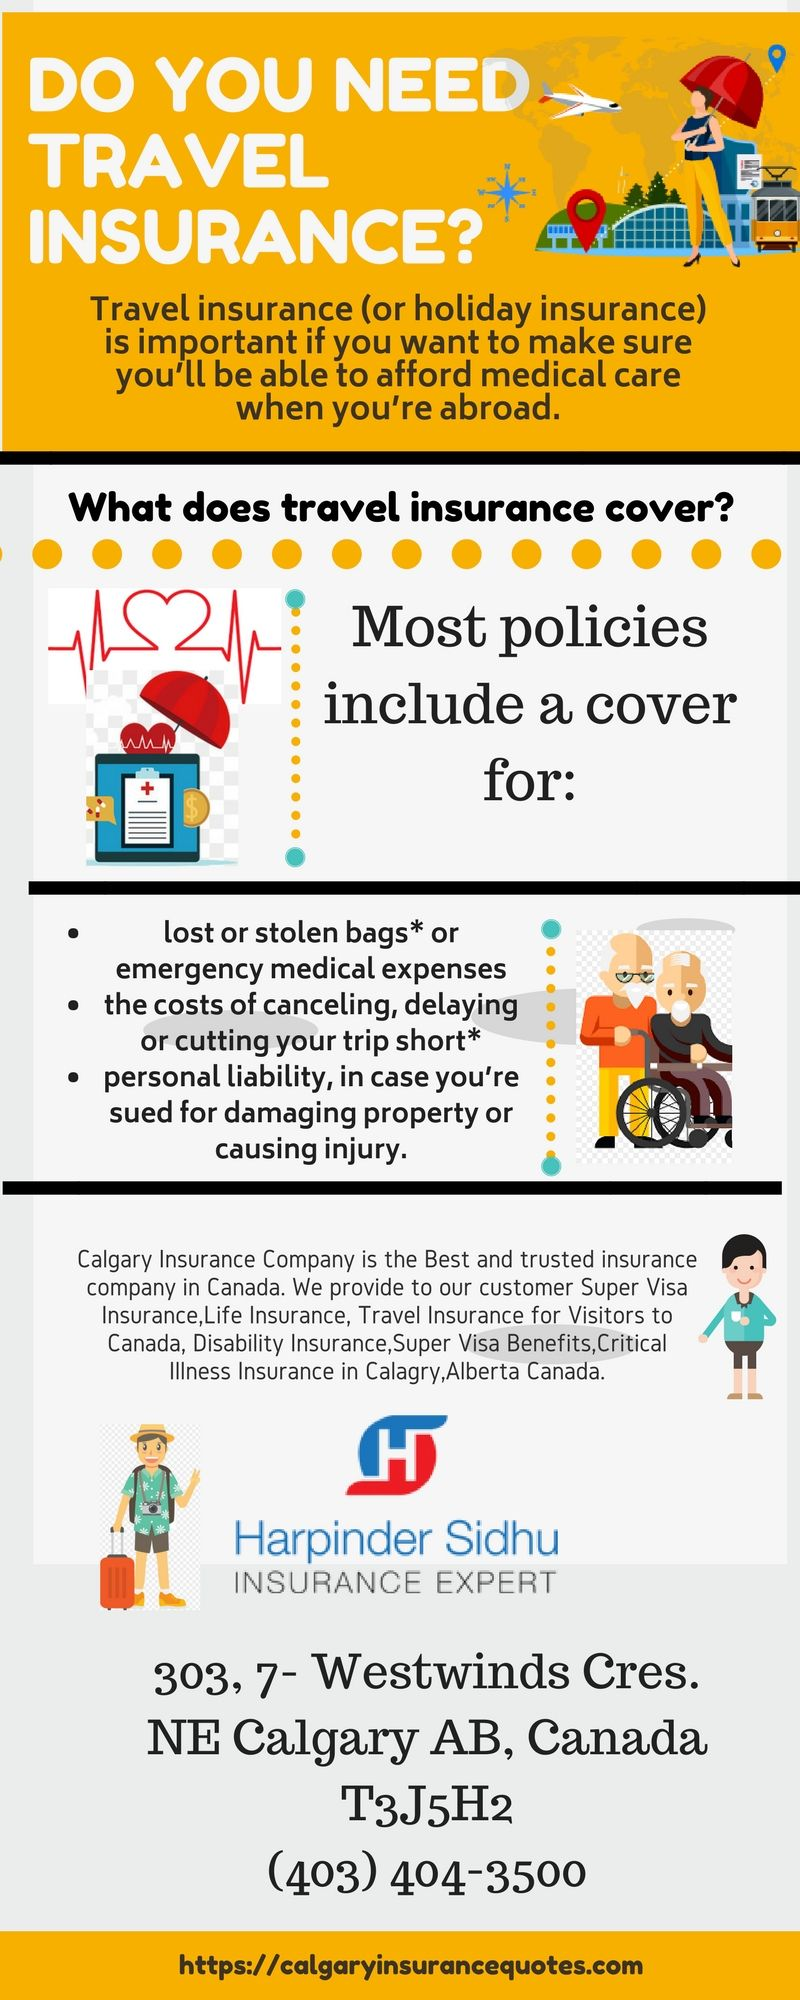 Calagry Insurance Company Covers The Nity Grity Of The Expenses During Your Stay Or Any Kind Of Money Crises In Ca Travel Insurance Holiday Insurance Insurance